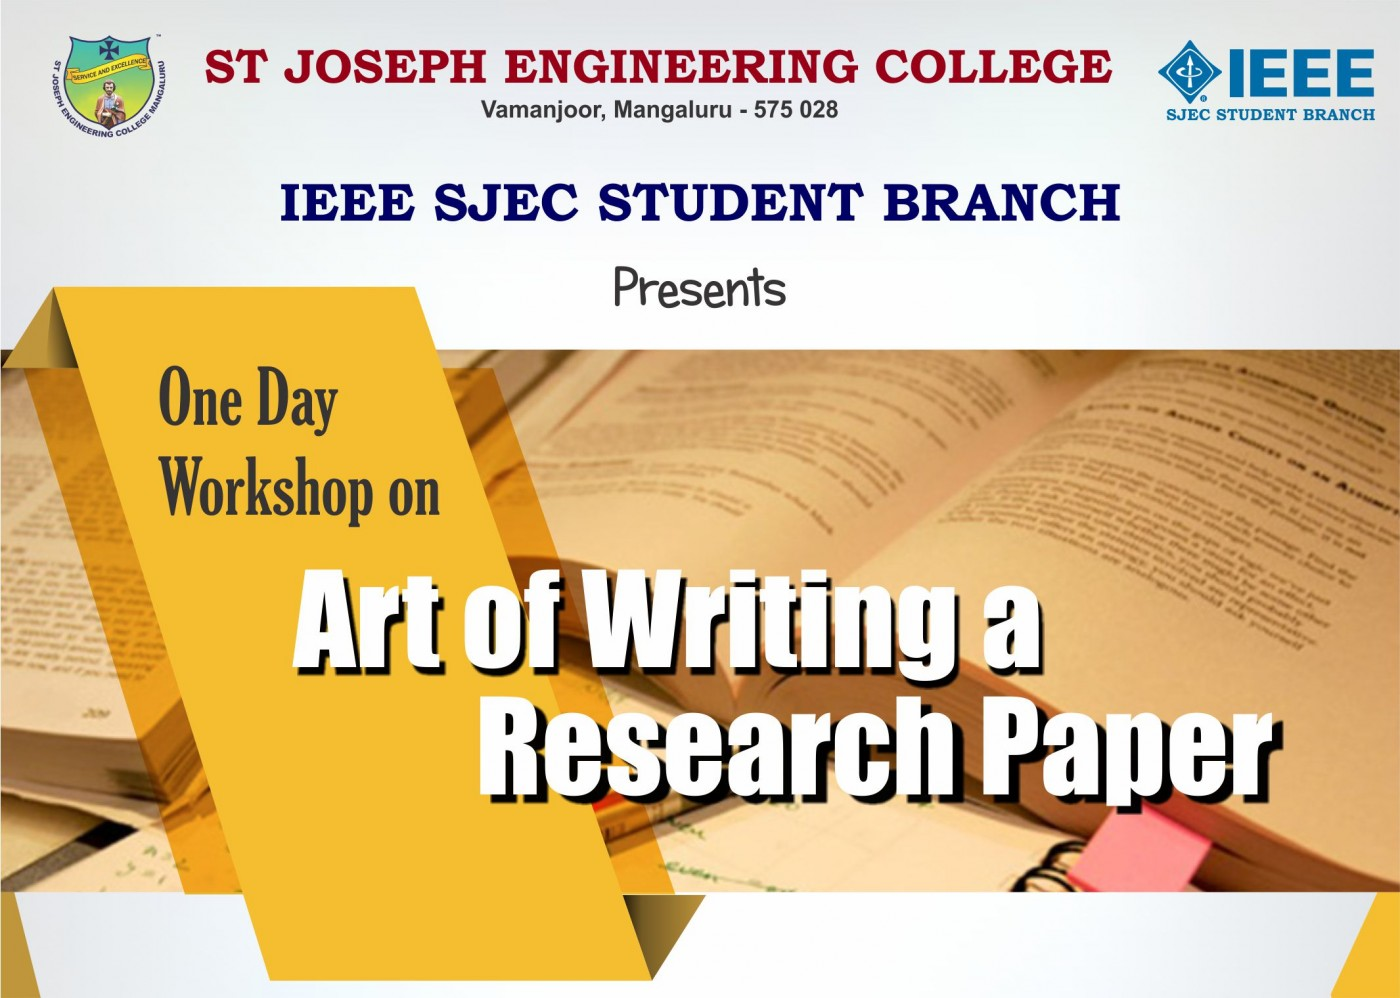 011 Research Paper Writing Workshop Unforgettable Process Software Ppt 1400